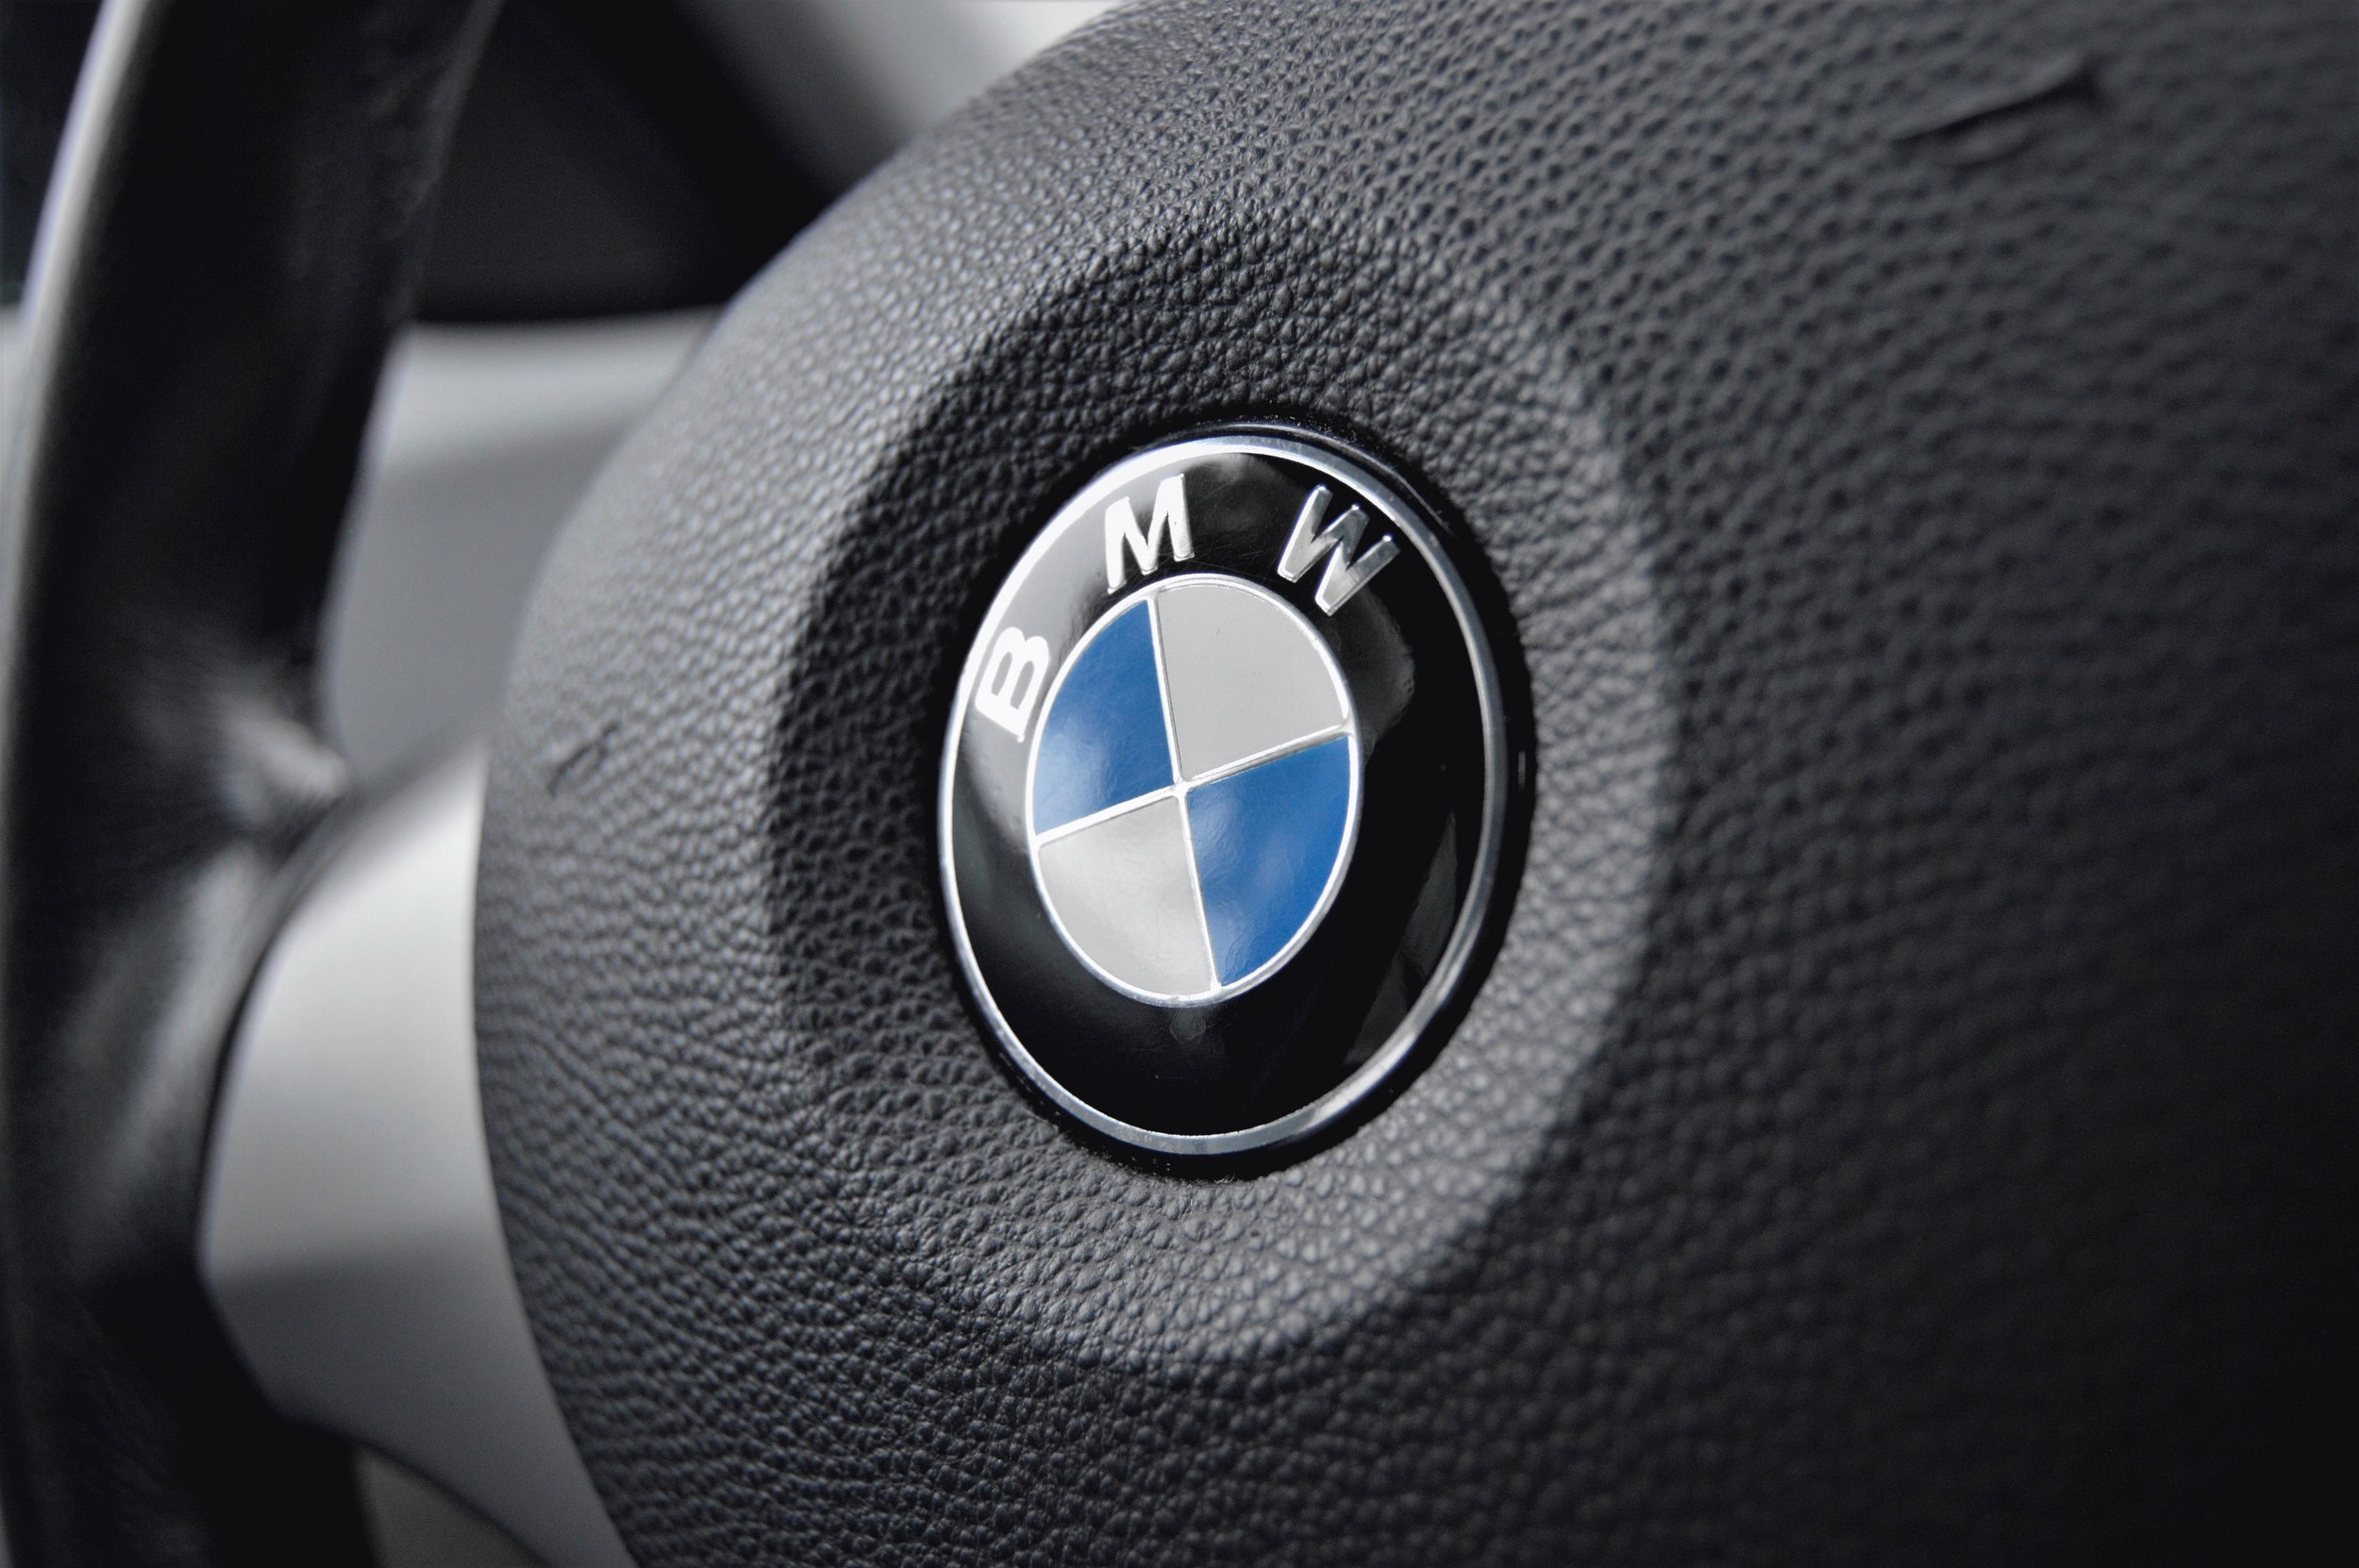 Canva - Black and Gray Bmw Steering Wheel.jpg